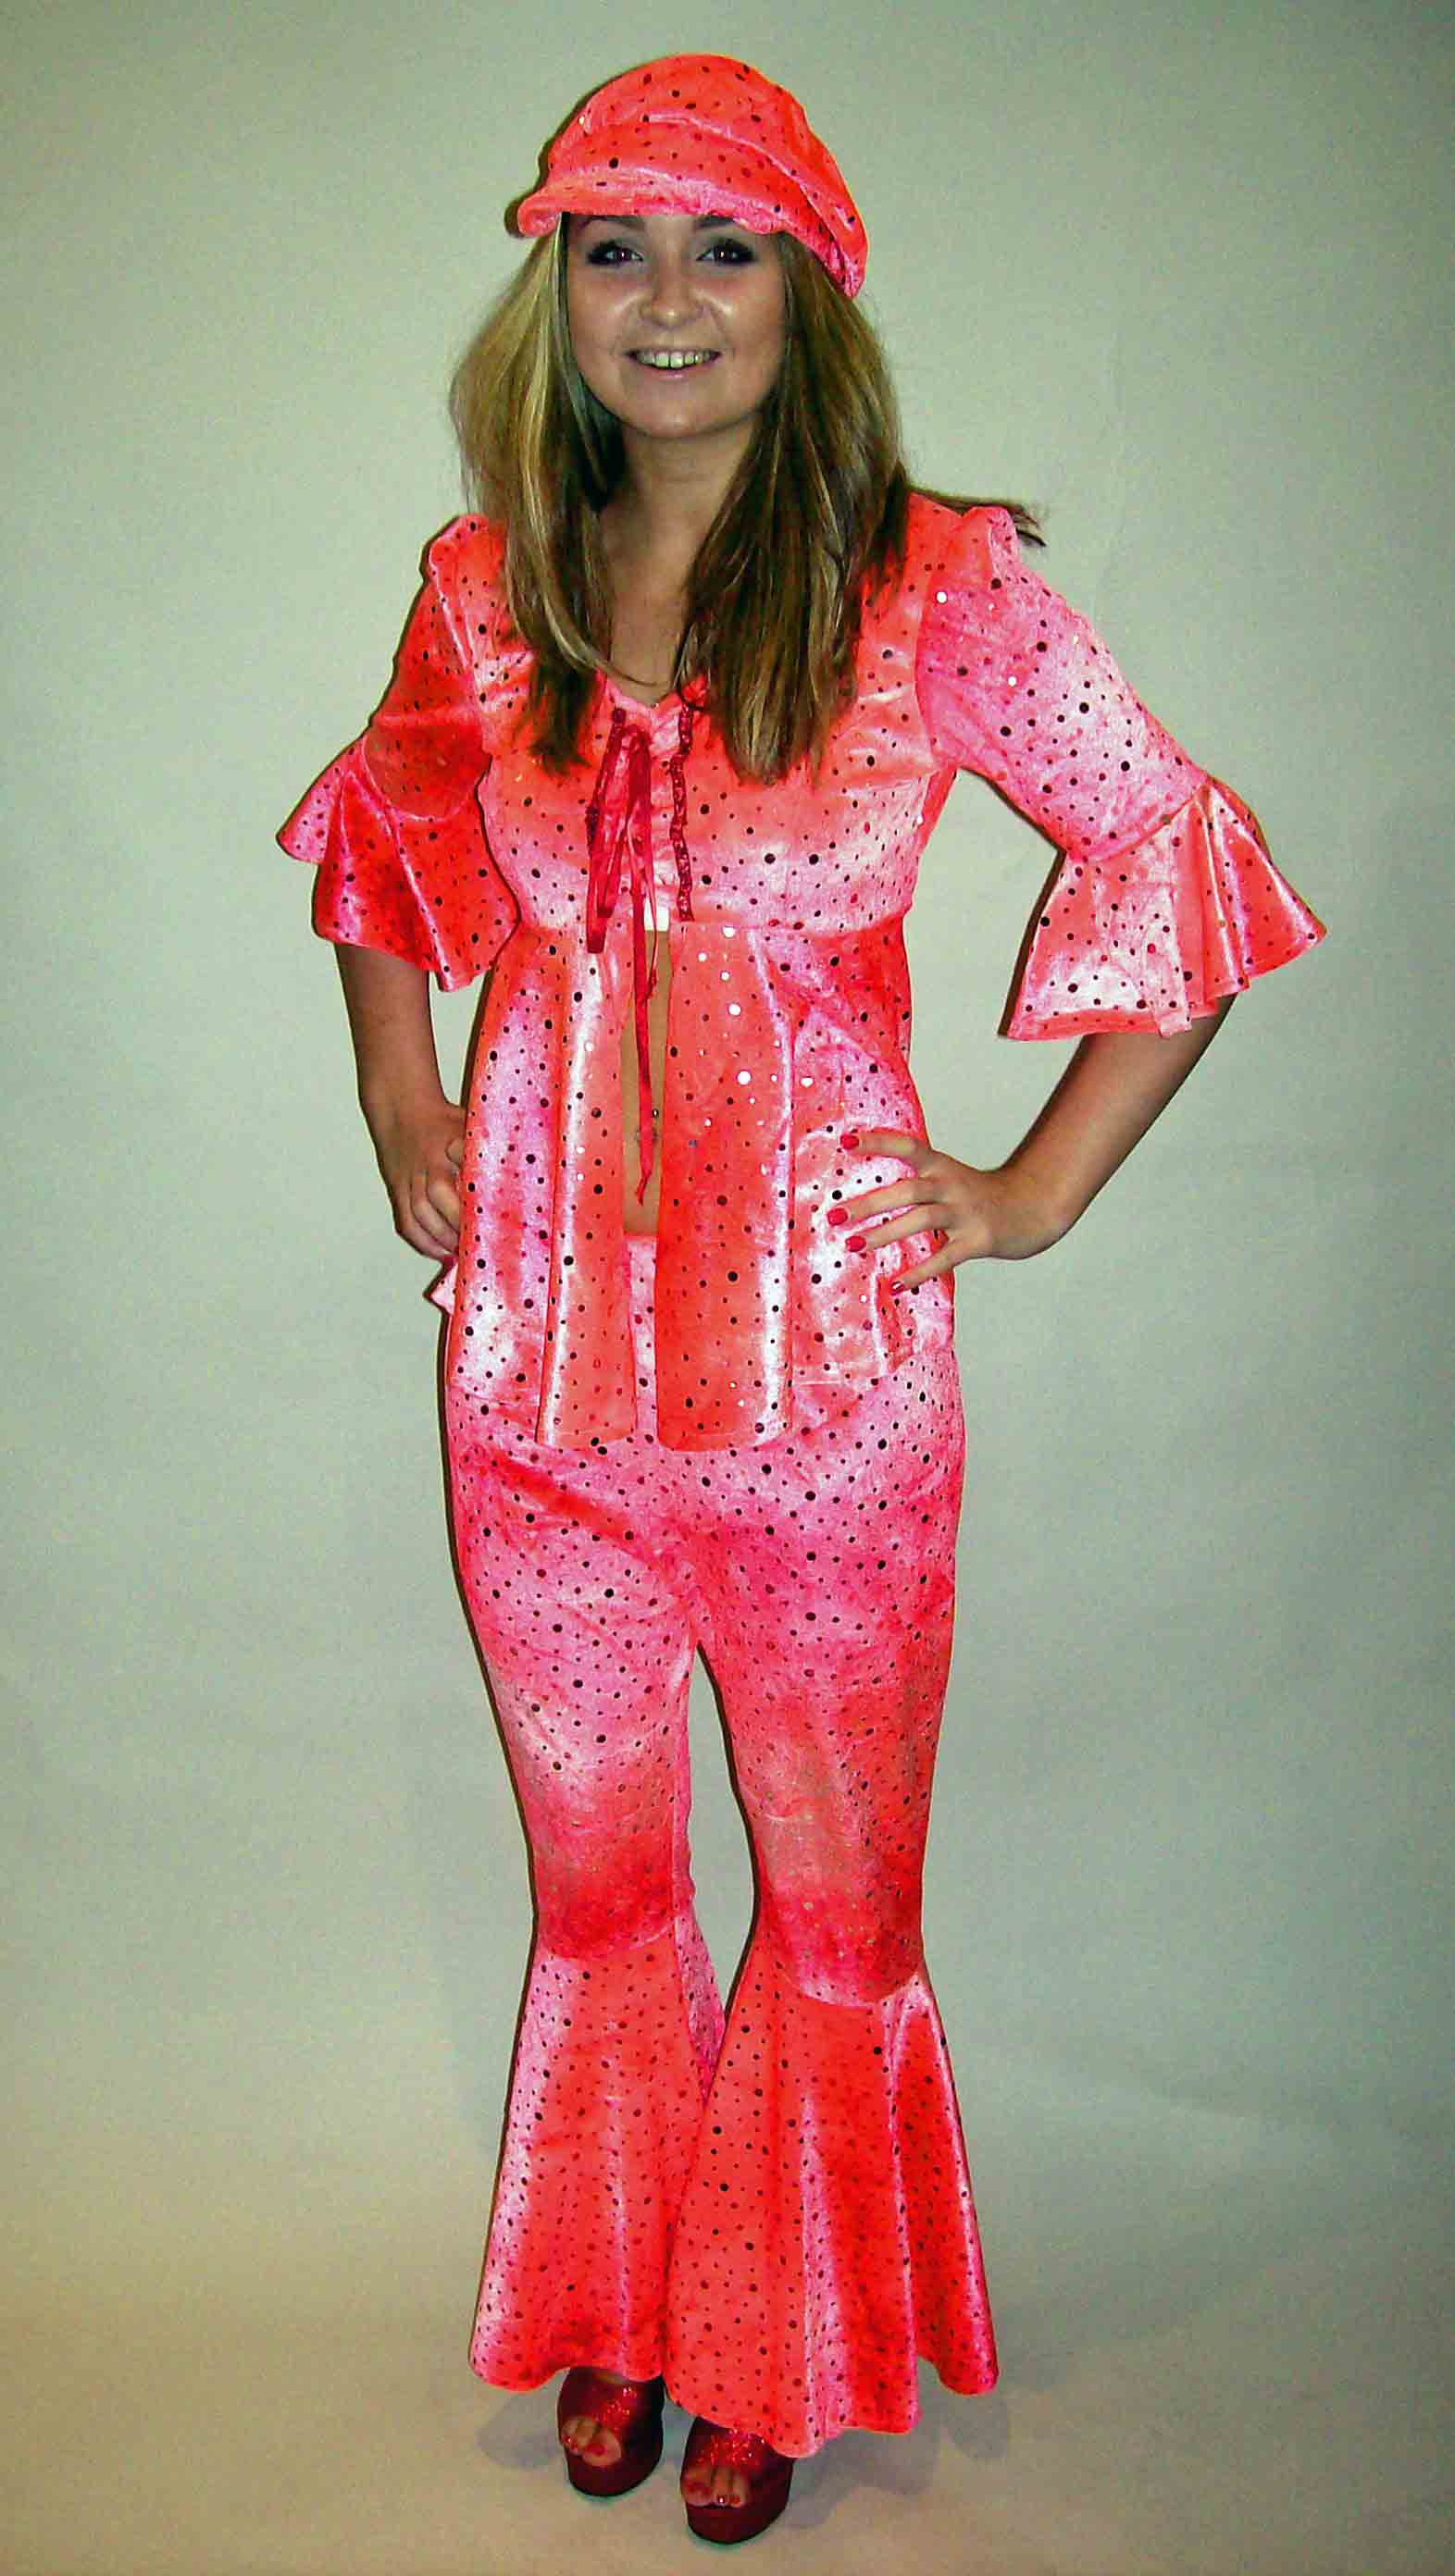 70s Girl - Pink Sequin